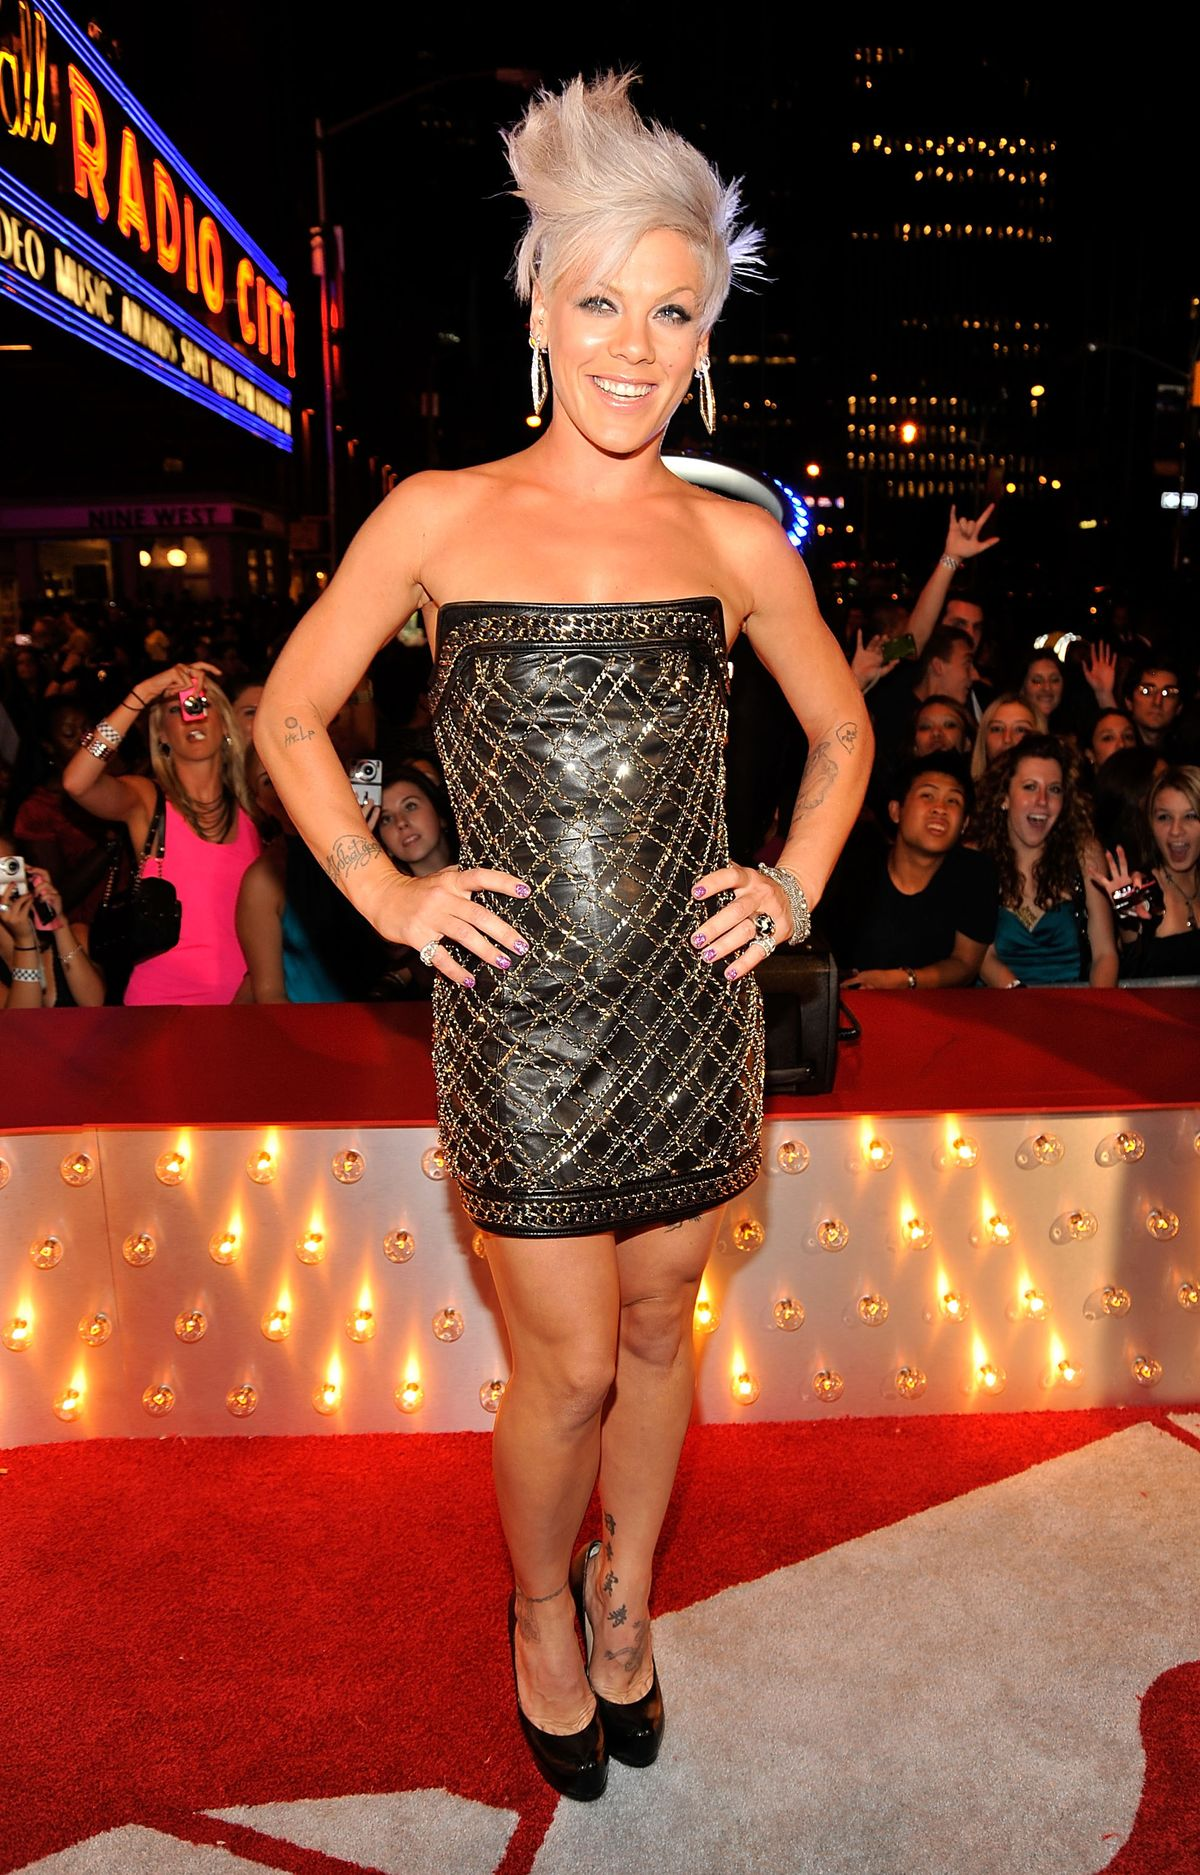 NEW YORK - SEPTEMBER 13: Singer Pink attends the 2009 MTV Video Music Awards at Radio City Music Hall on September 13, 2009 in New York City.  (Photo by Kevin Mazur/WireImage)